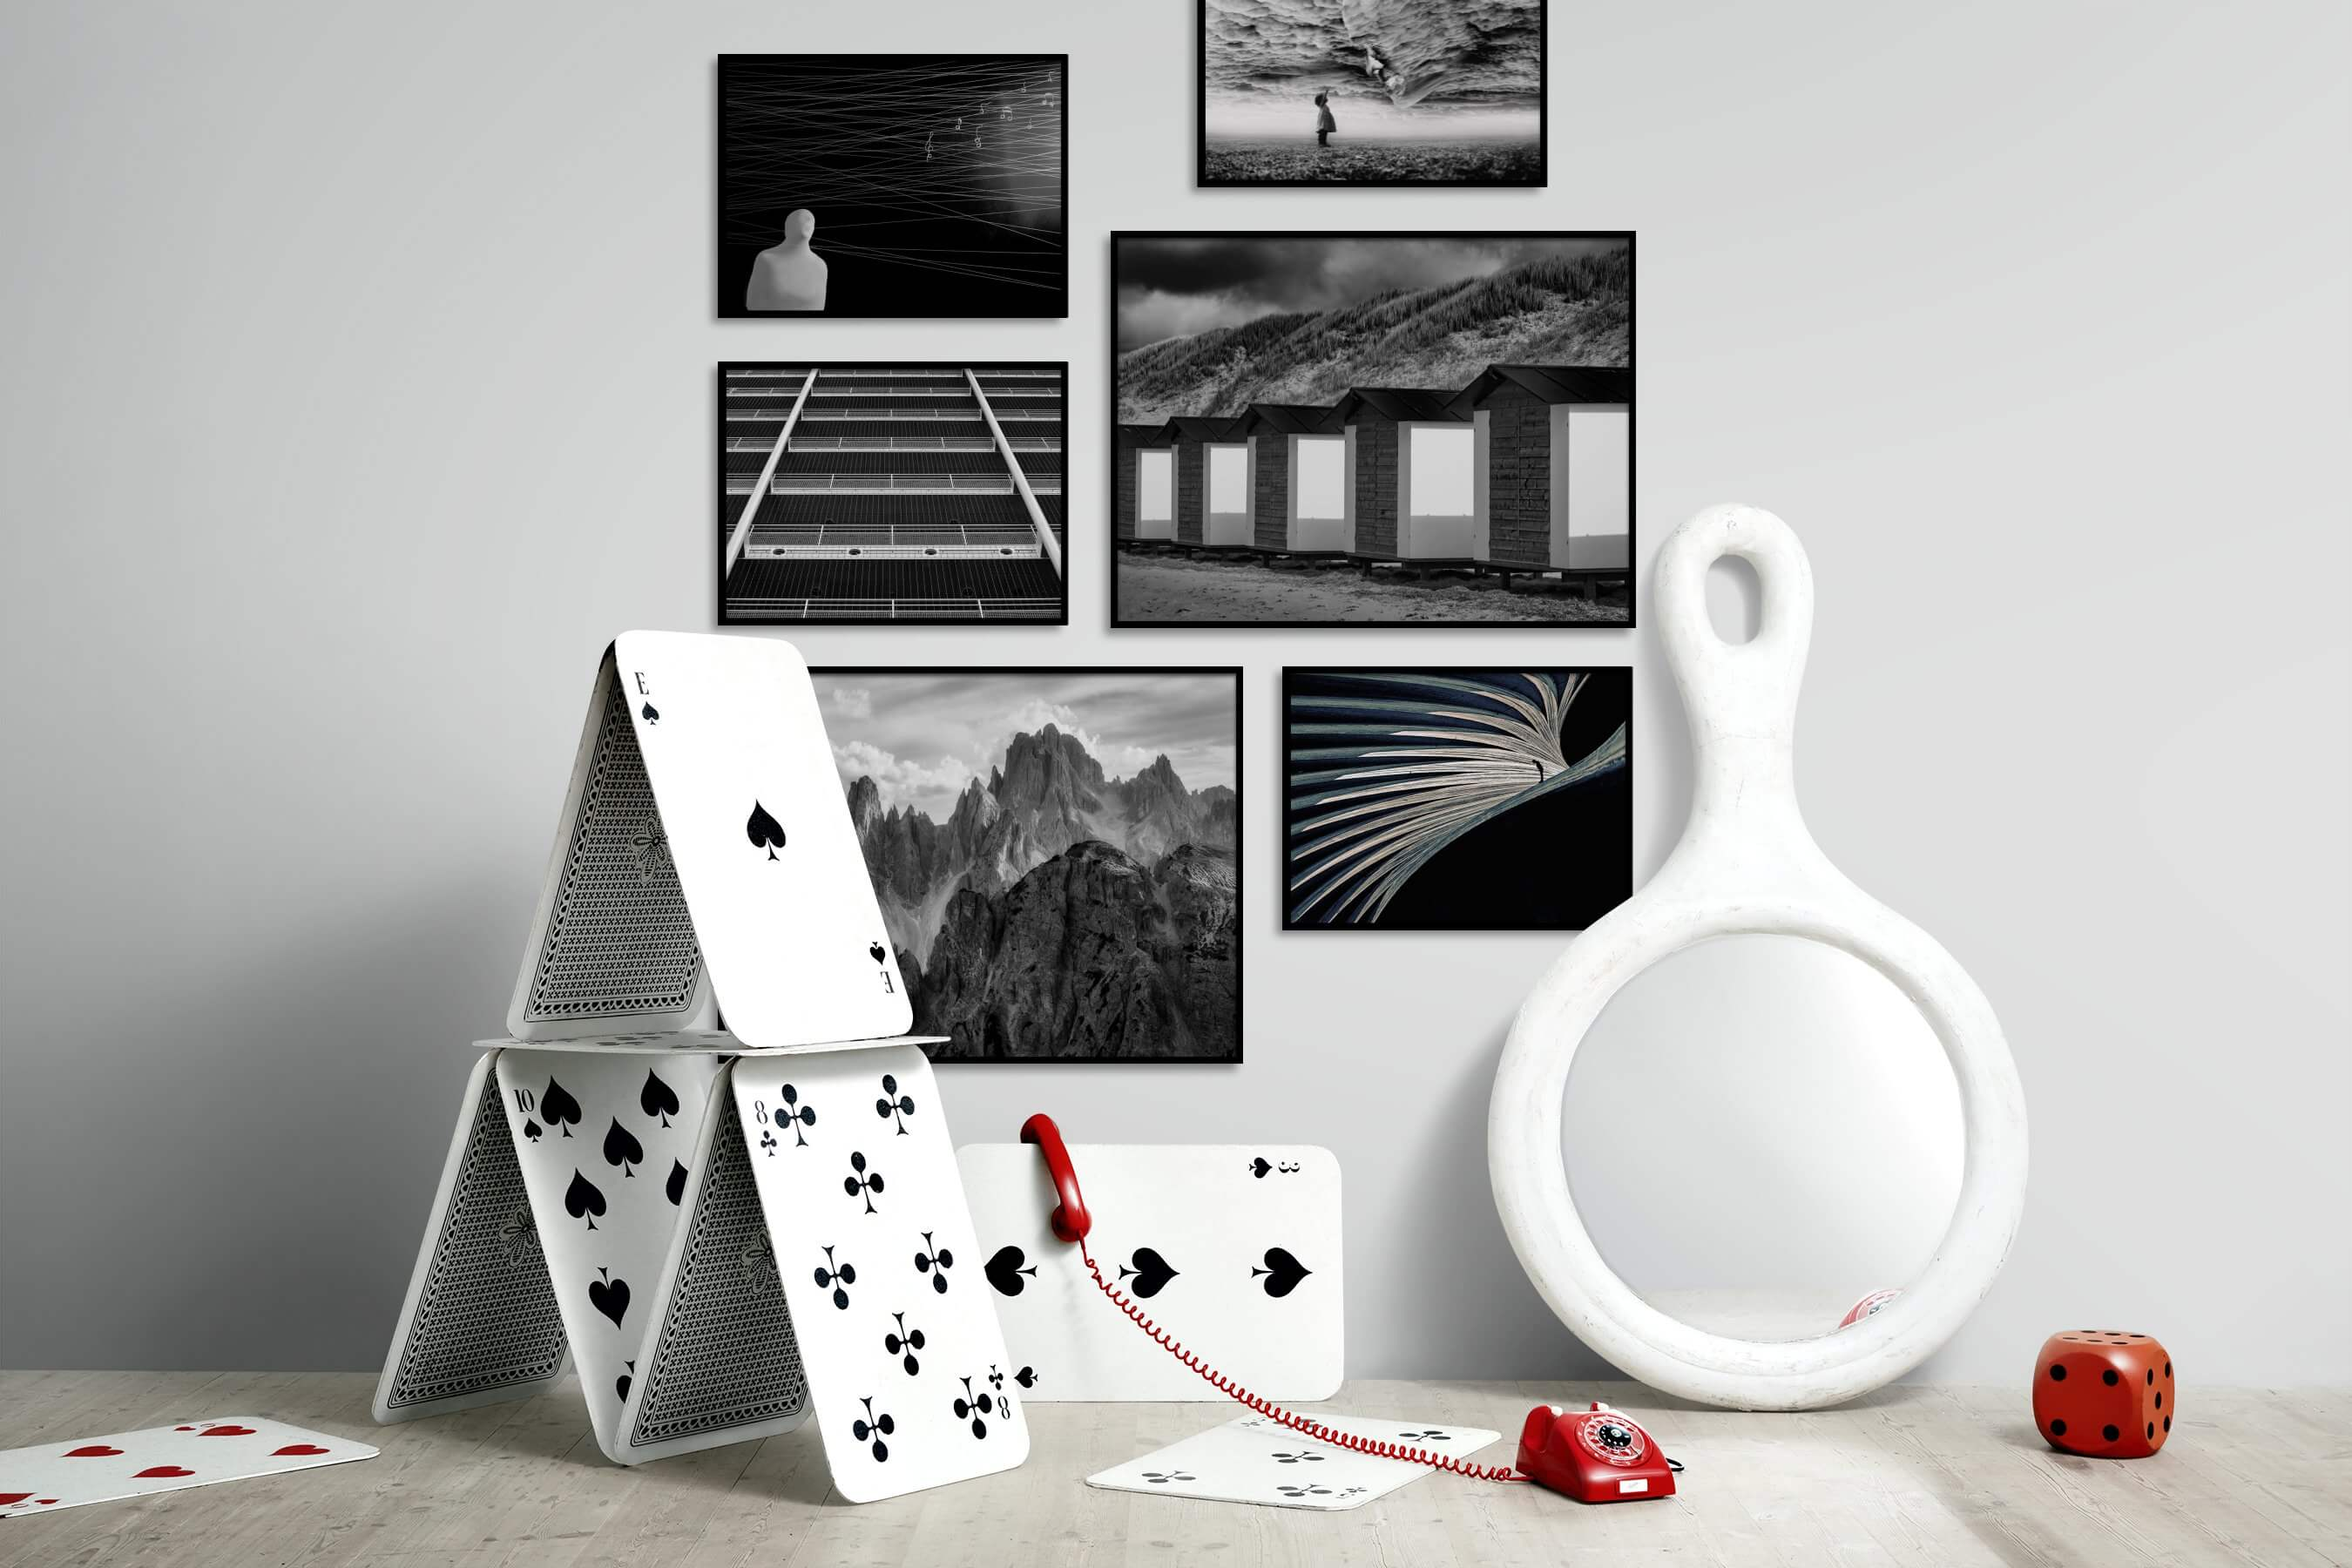 Gallery wall idea with six framed pictures arranged on a wall depicting Artsy, Black & White, For the Moderate, City Life, Beach & Water, and Nature